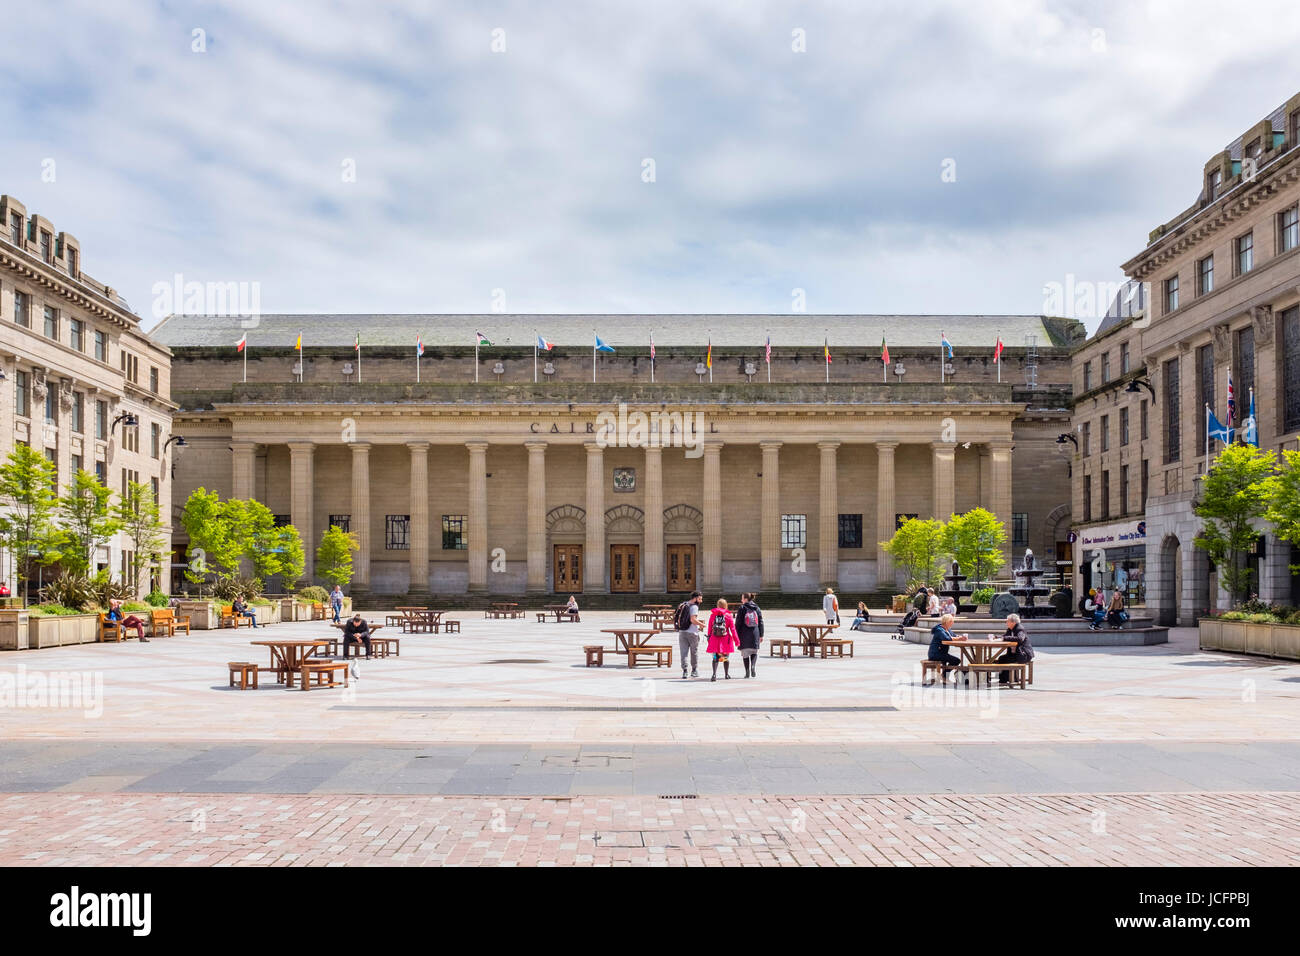 Exterior view of Caird Hall in Dundee, Scotland, United kingdom - Stock Image